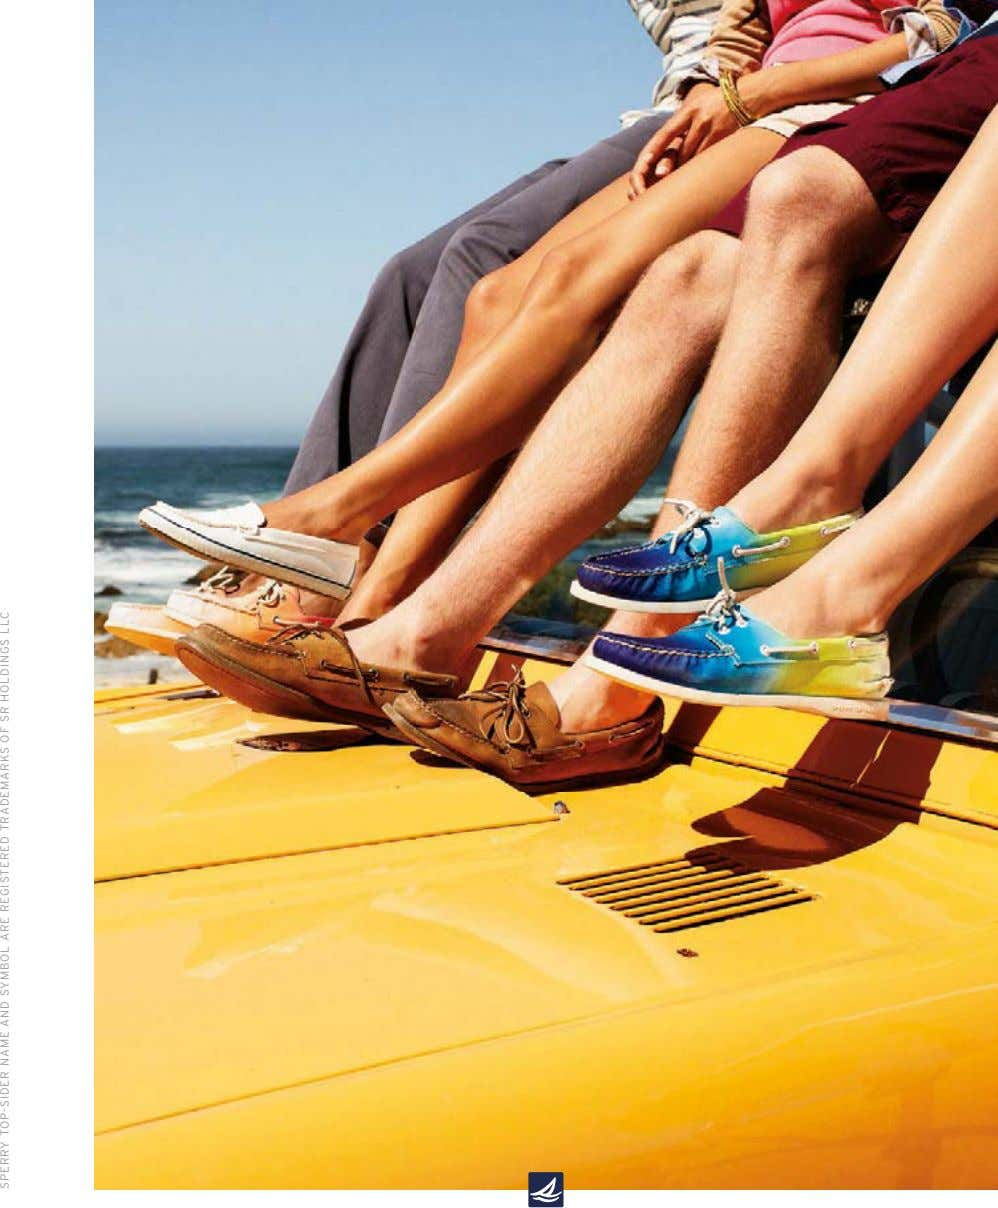 SPERRY TOP-SIDER NAME AND SYMBOL ARE REGISTERED TRADEMARKS OF SR HOLDINGS LLC